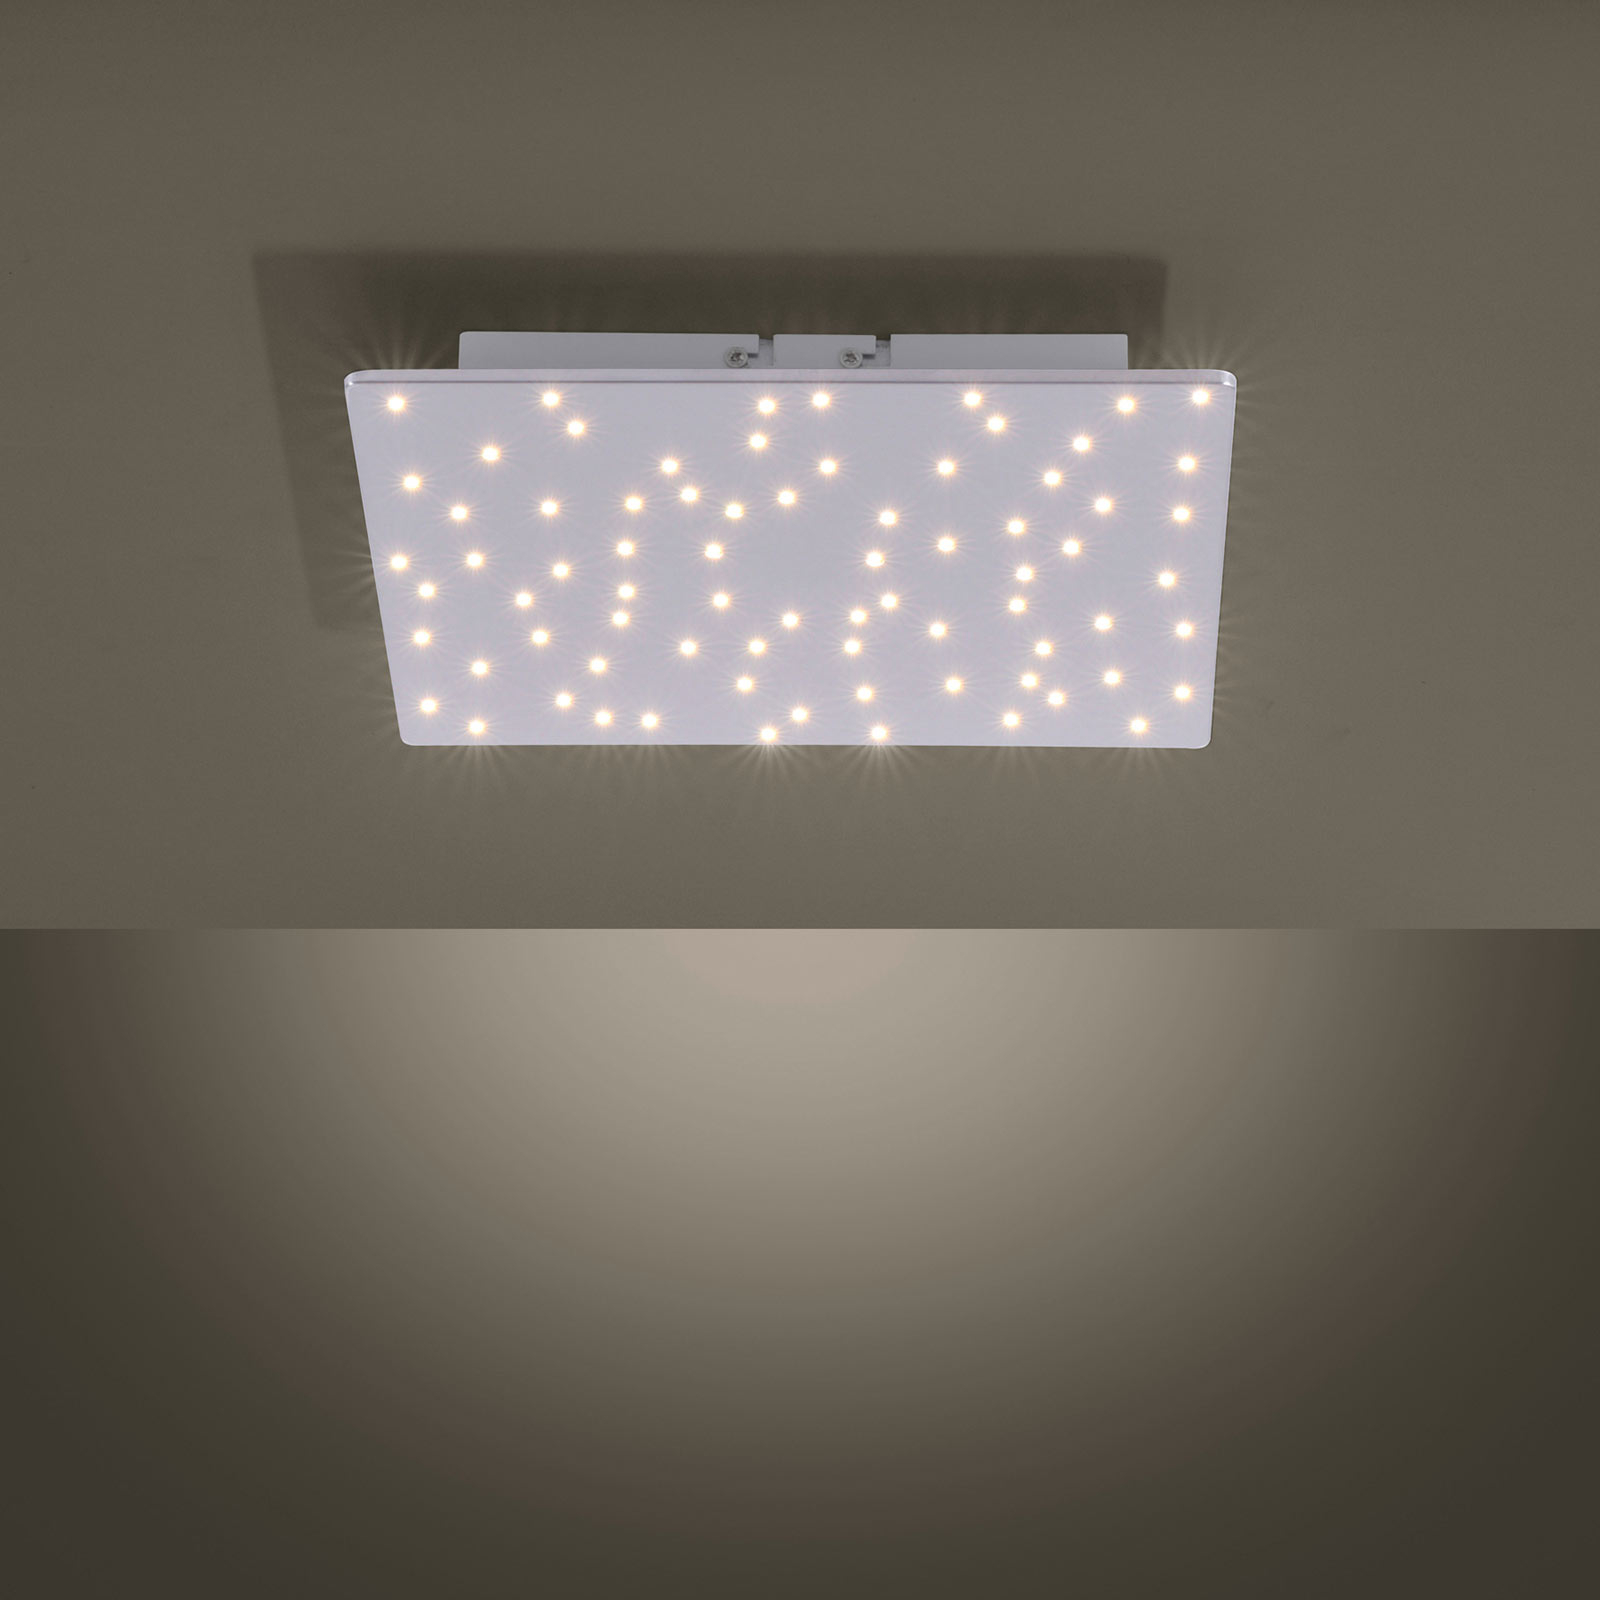 Lampa sufitowa LED Sparkle tunable white, 30x30 cm